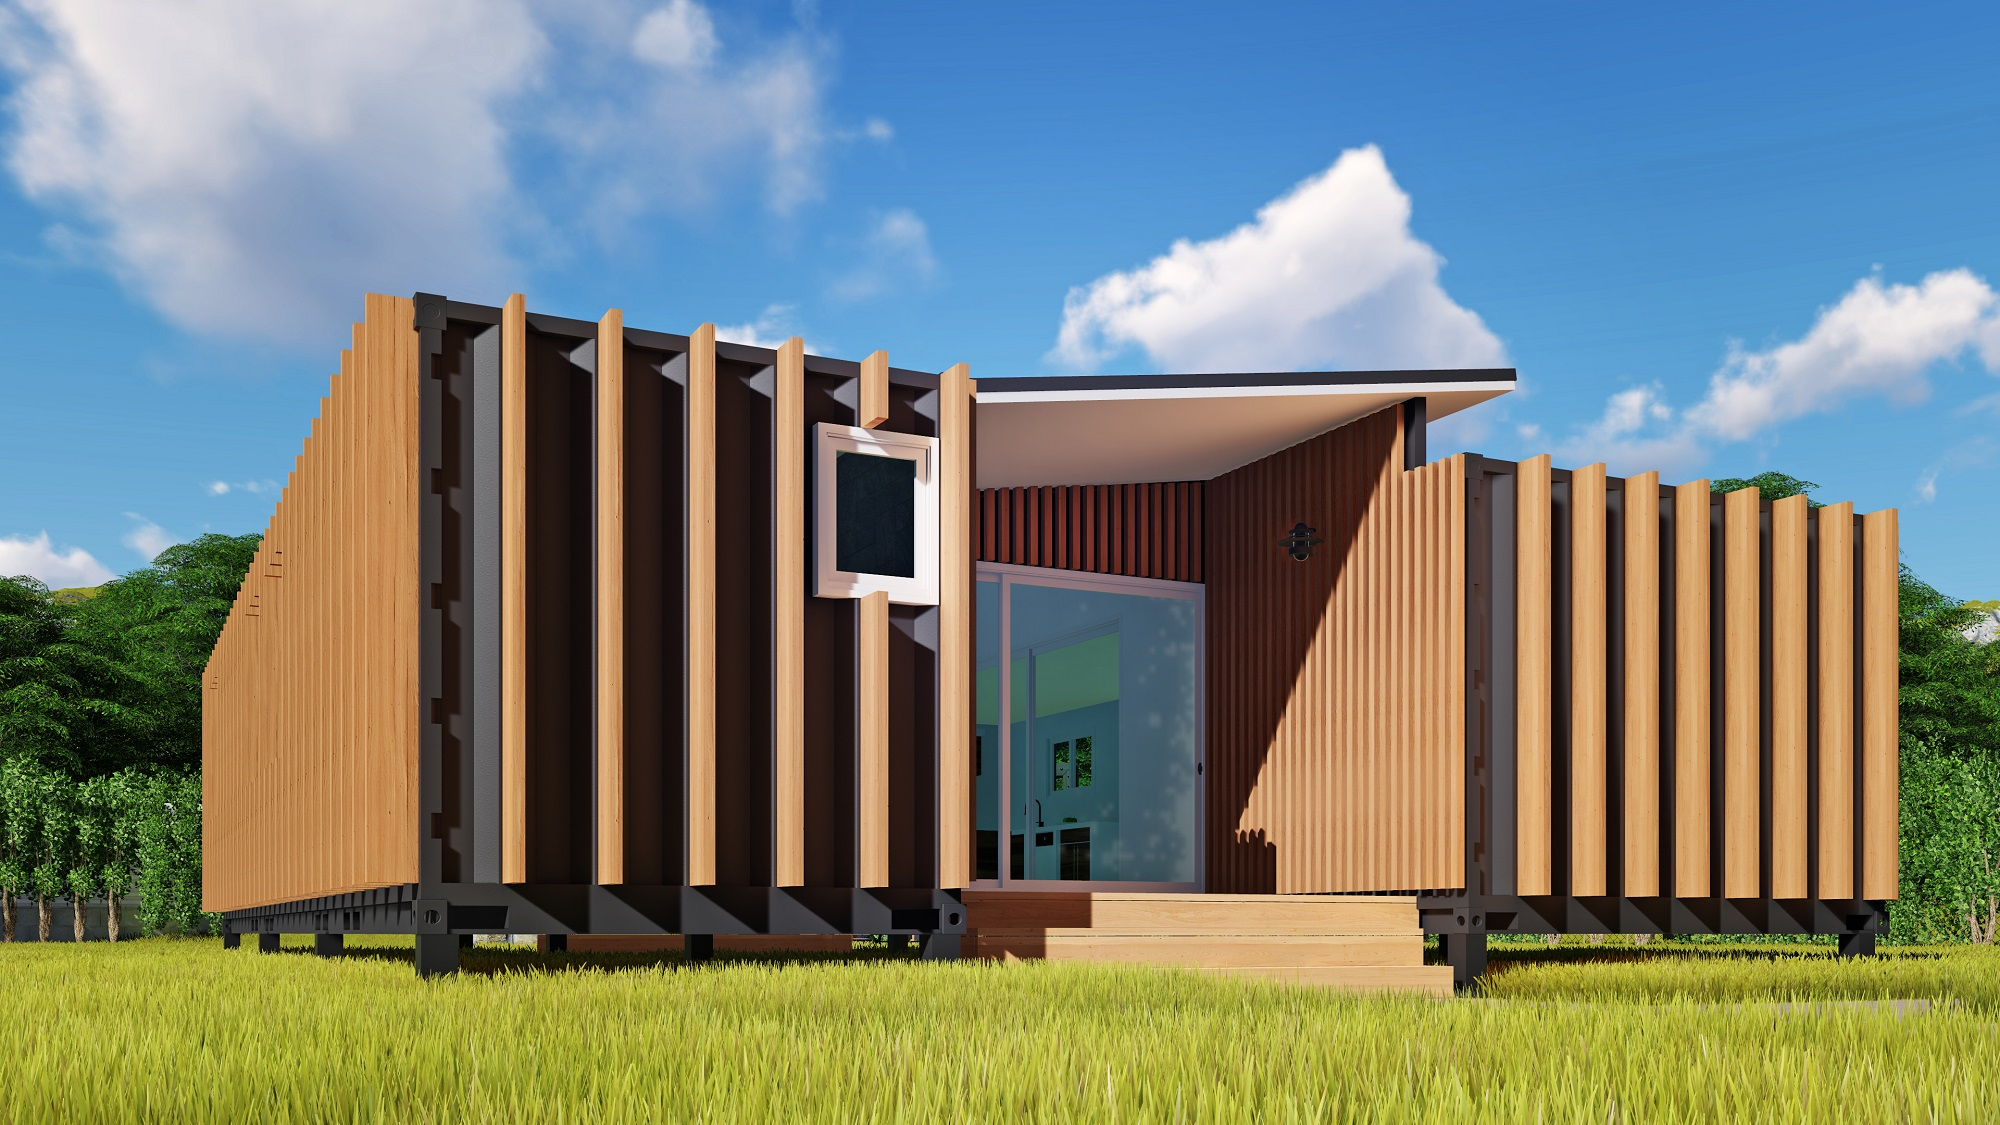 sch15 2 x 40ft container home plan with breezeway eco. Black Bedroom Furniture Sets. Home Design Ideas